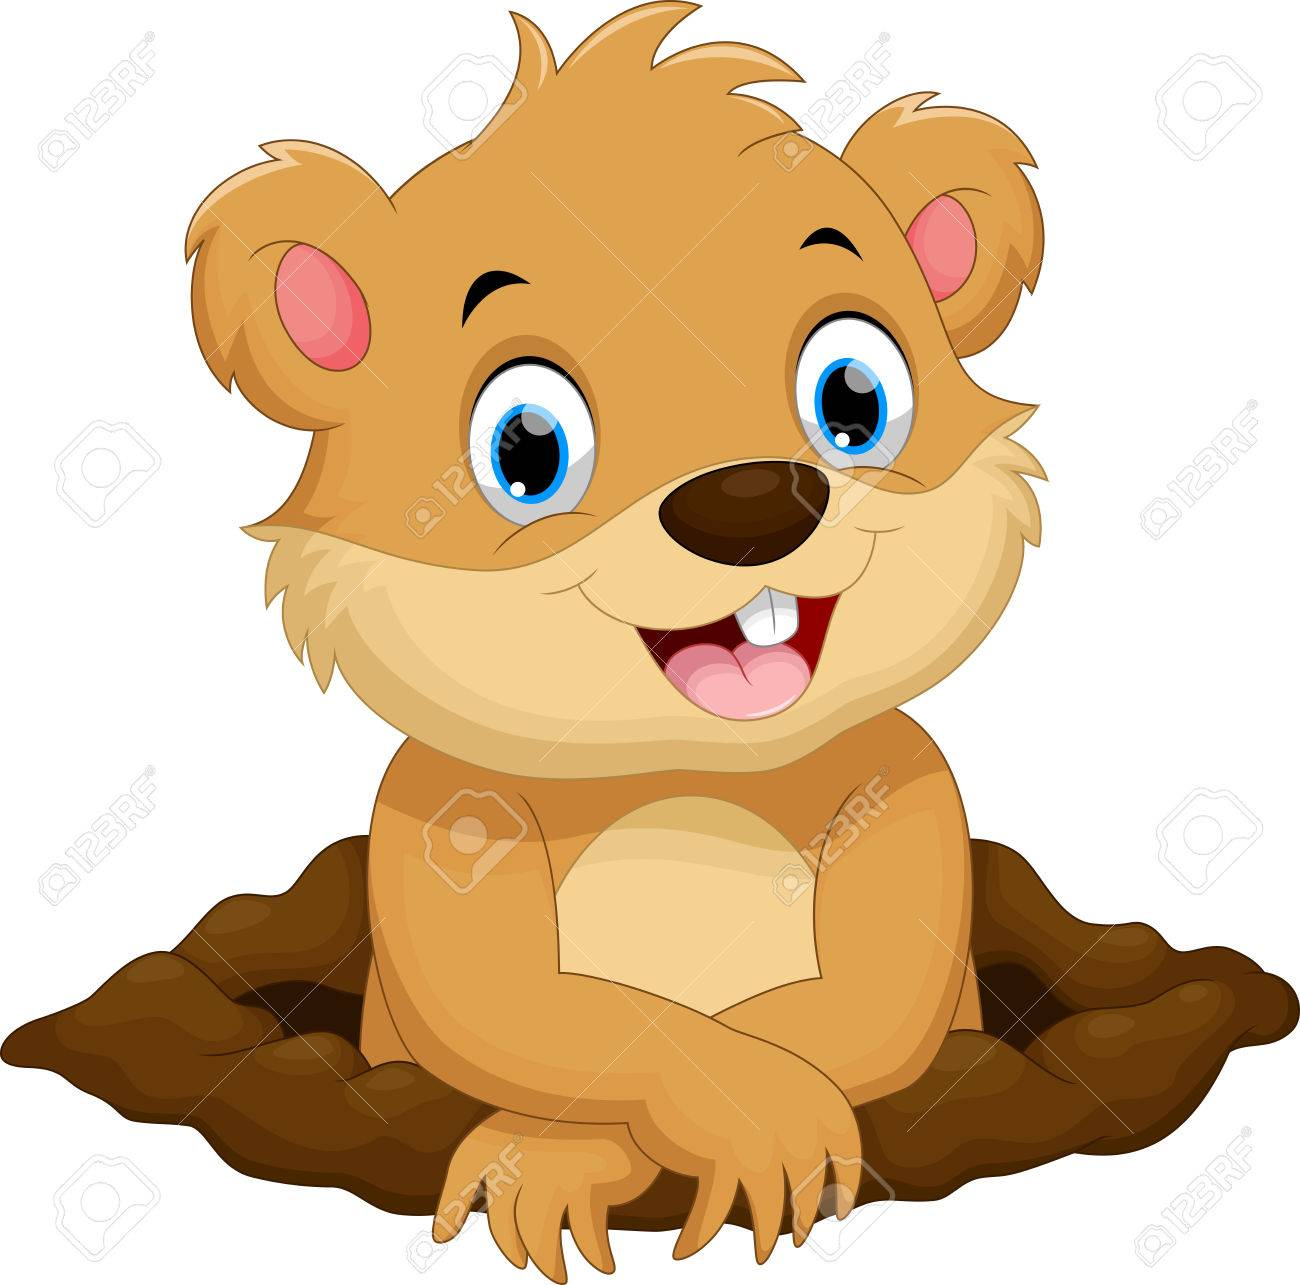 cute groundhog cartoon royalty free cliparts vectors and stock rh 123rf com clipart groundhog day clipart groundhog day